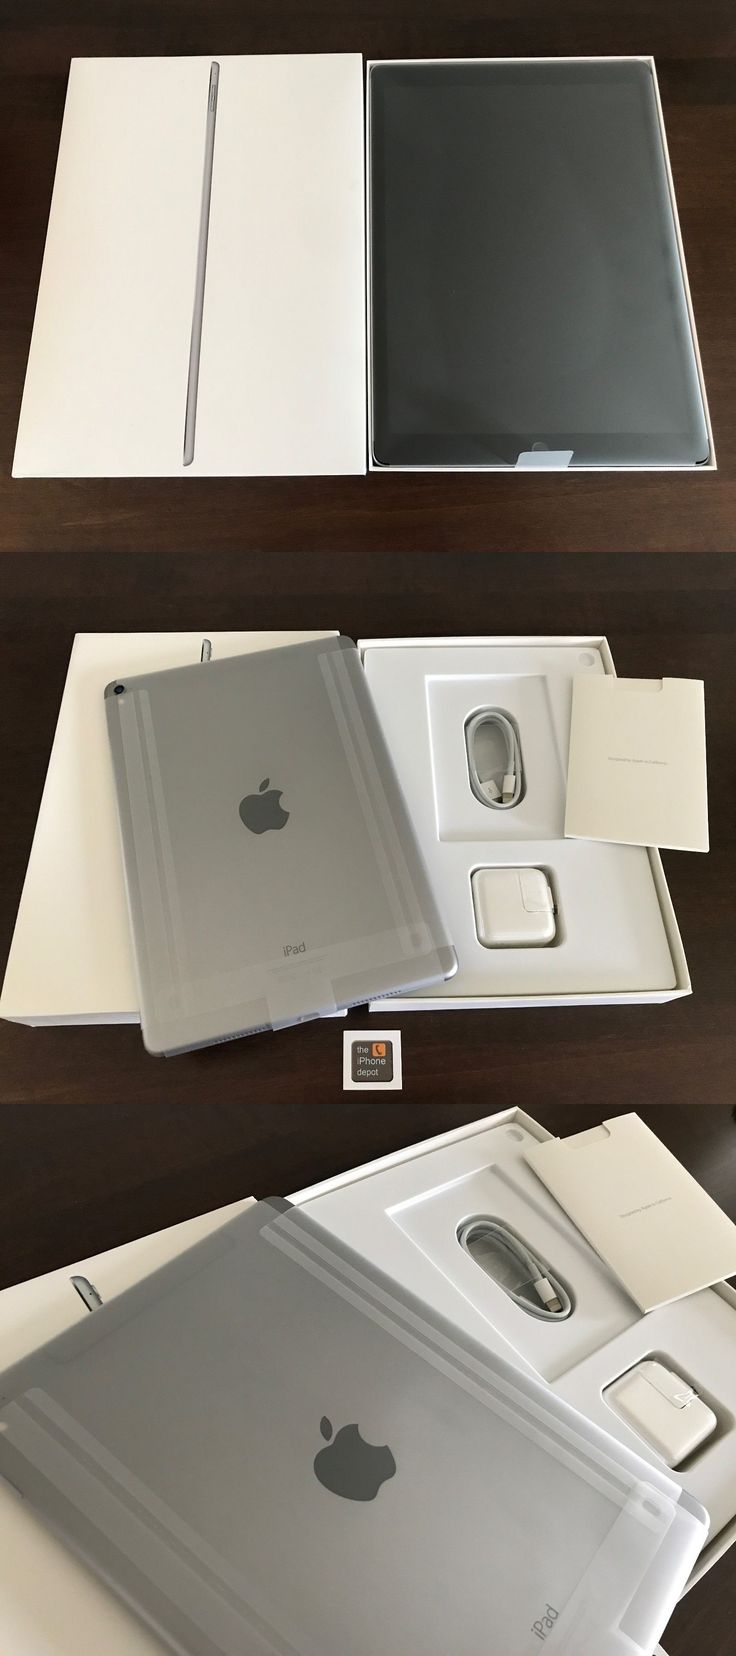 computers: New Apple Ipad Pro 9.7 128Gb Wi-Fi + Cellular Factory Unlocked Space Gray 4G -> BUY IT NOW ONLY: $600 on eBay!